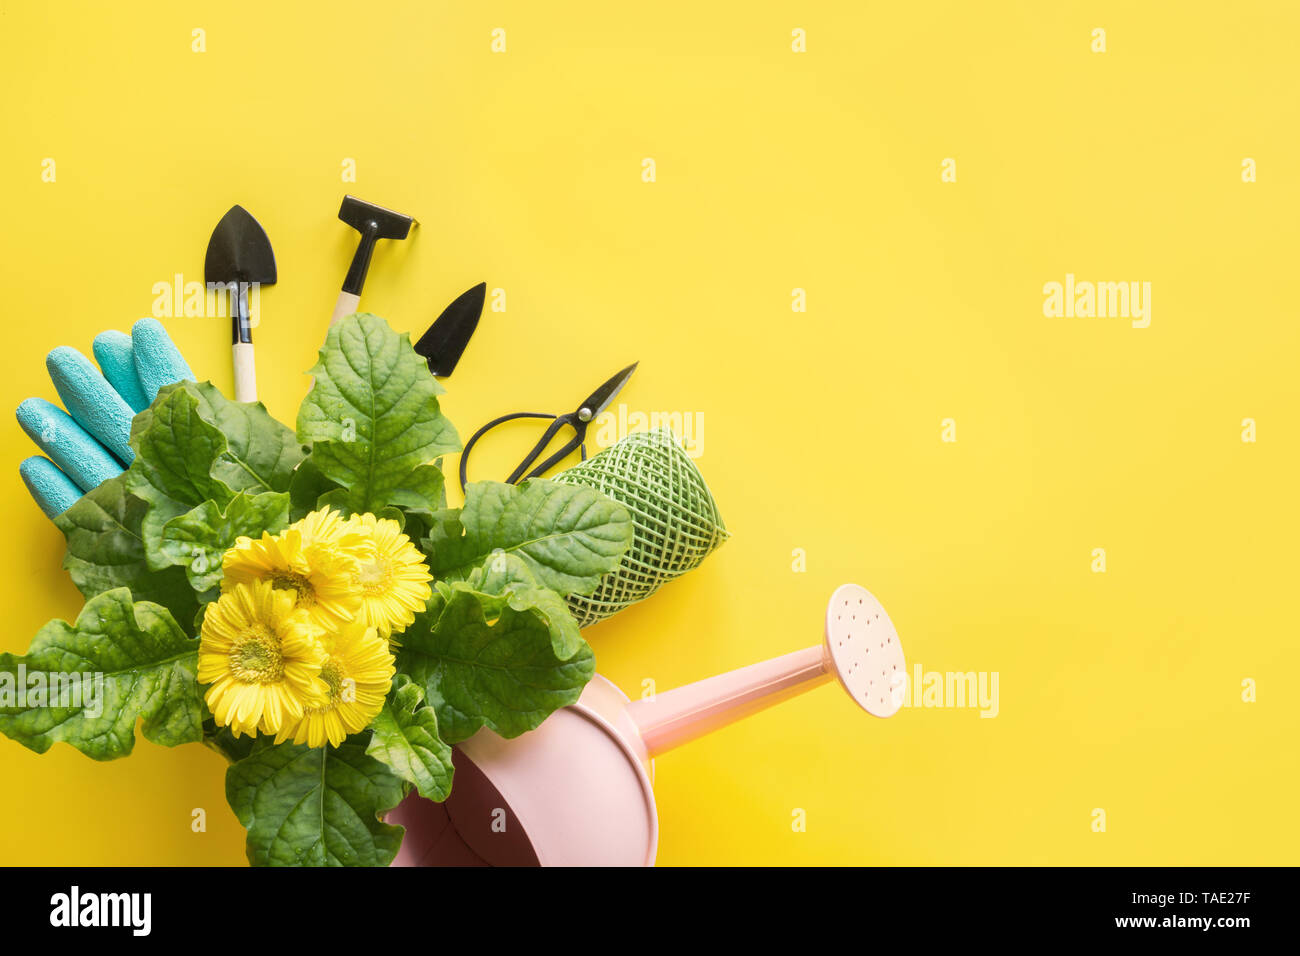 Gardening background with yellow gerbera, tolls and garden flowers plant on yellow background. Top view, place for text. - Stock Image